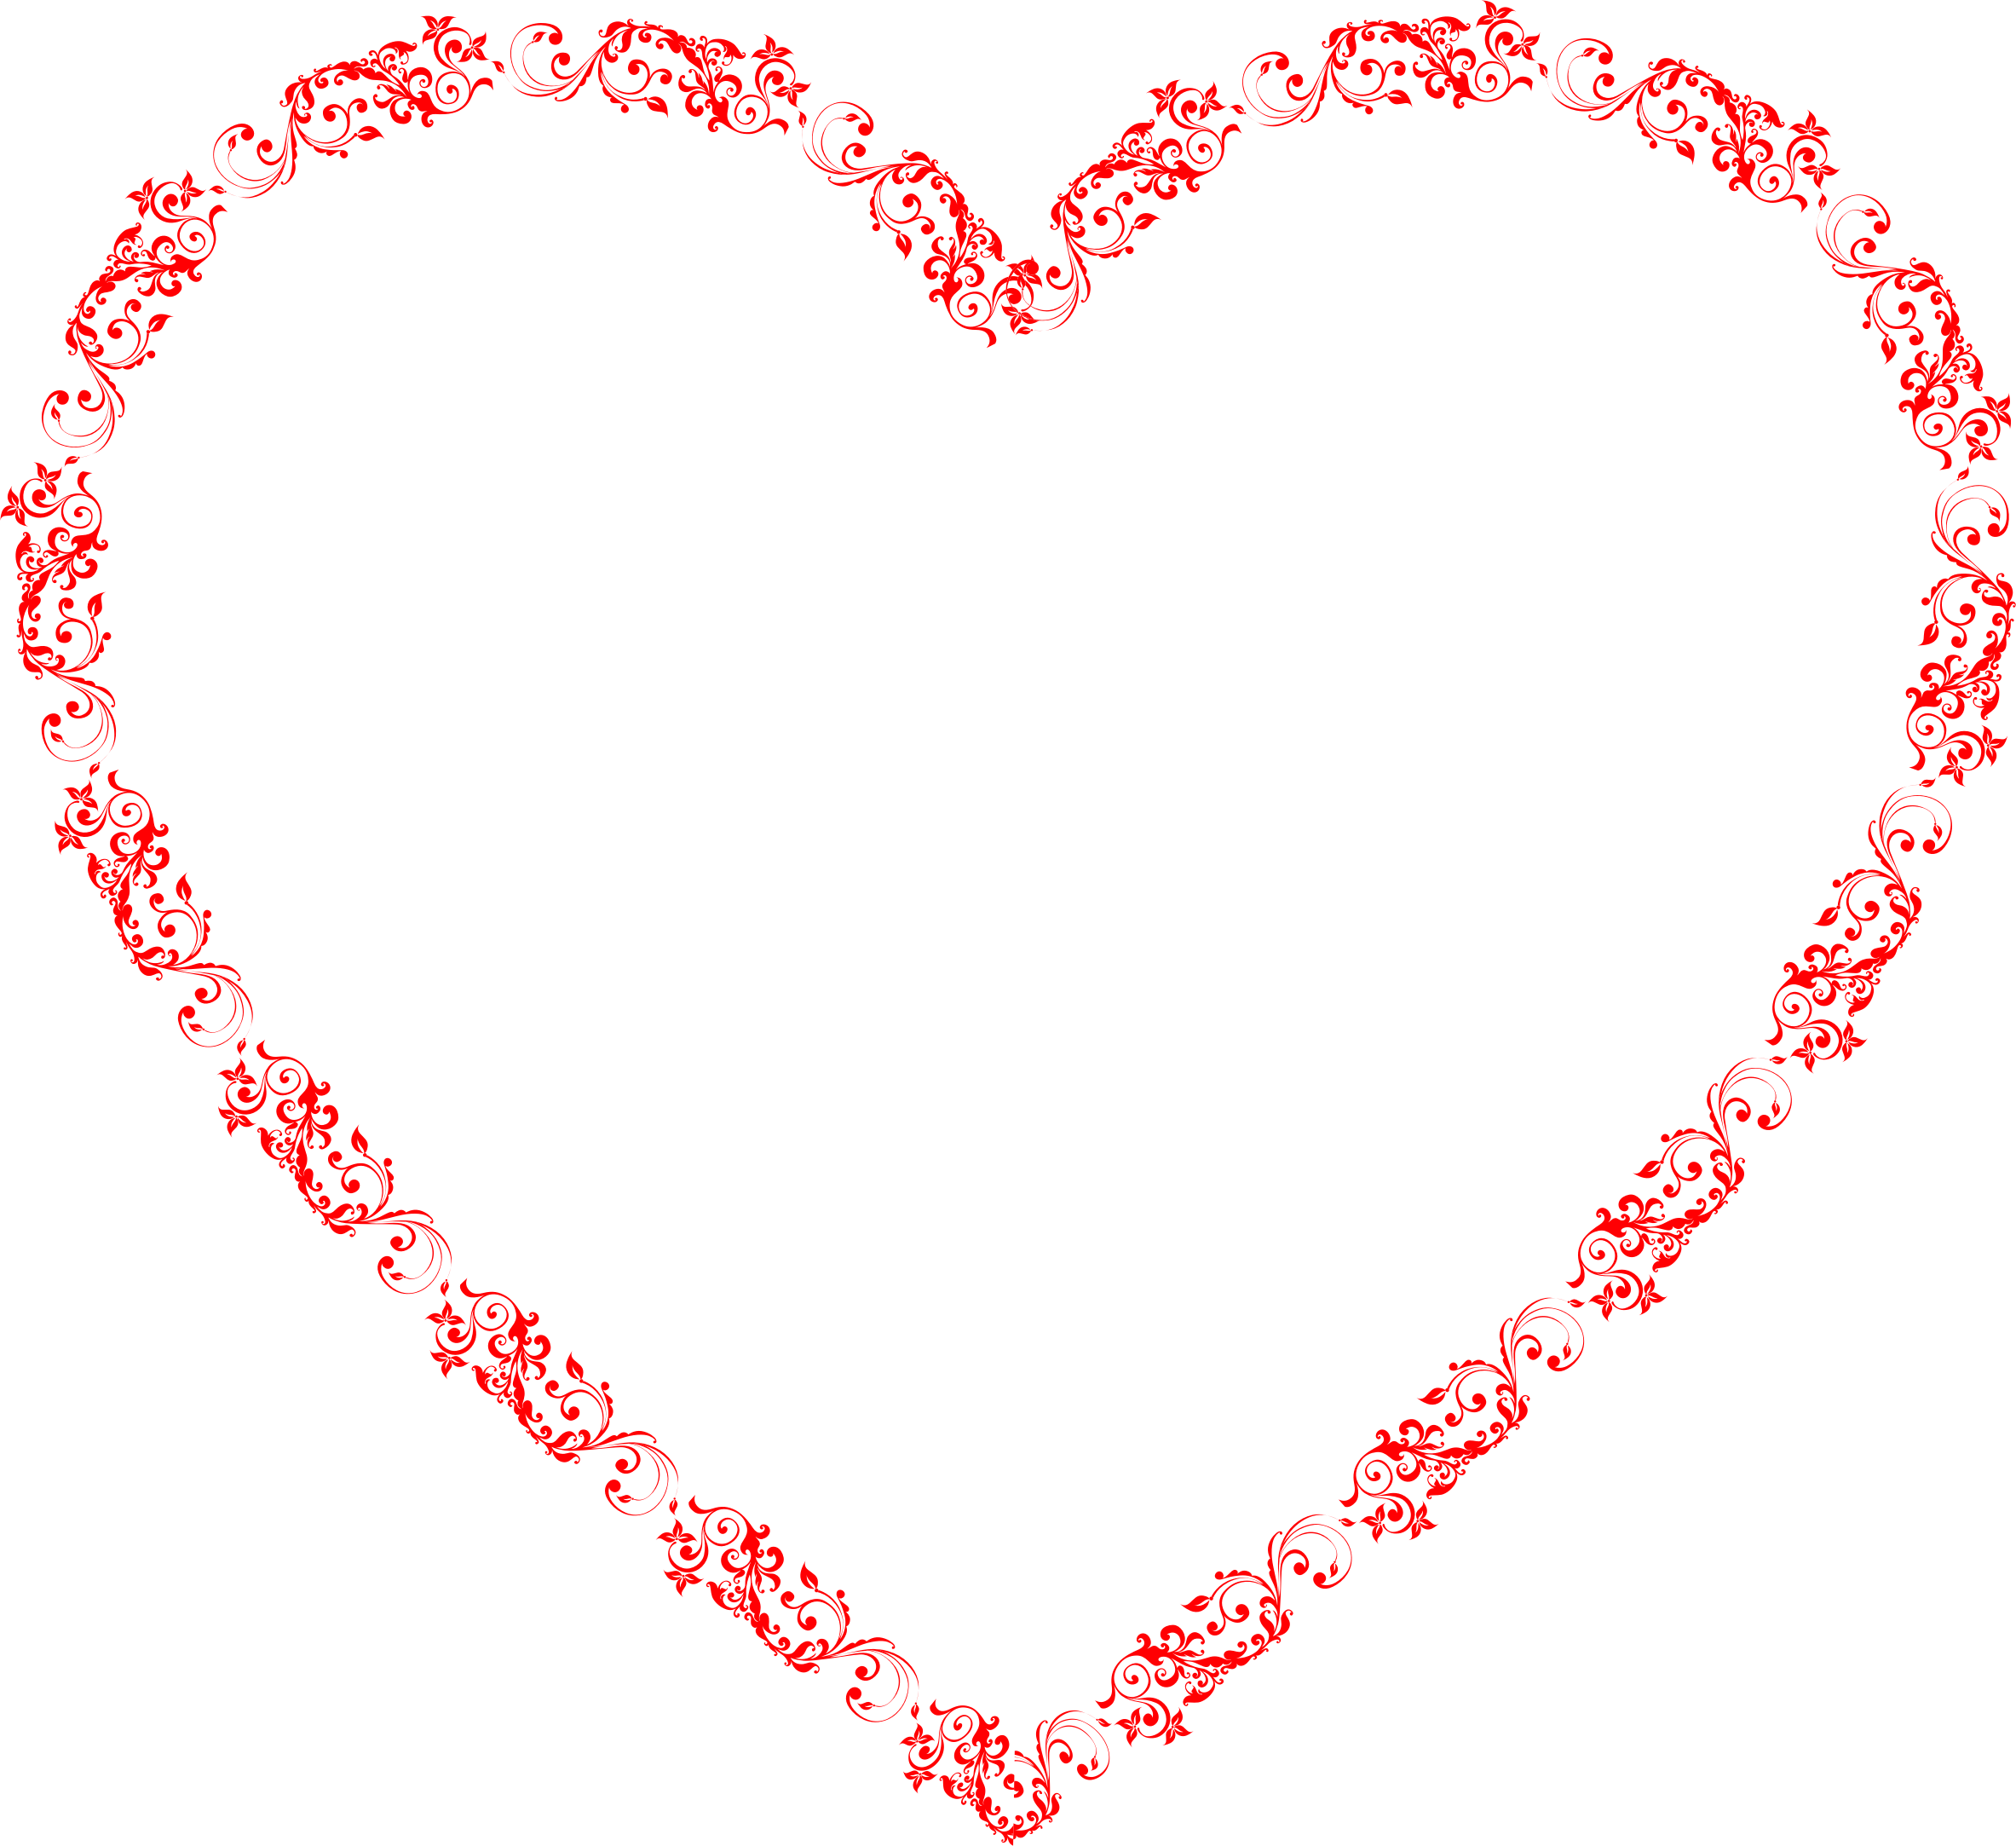 Heart flourish png. Icons free and downloads